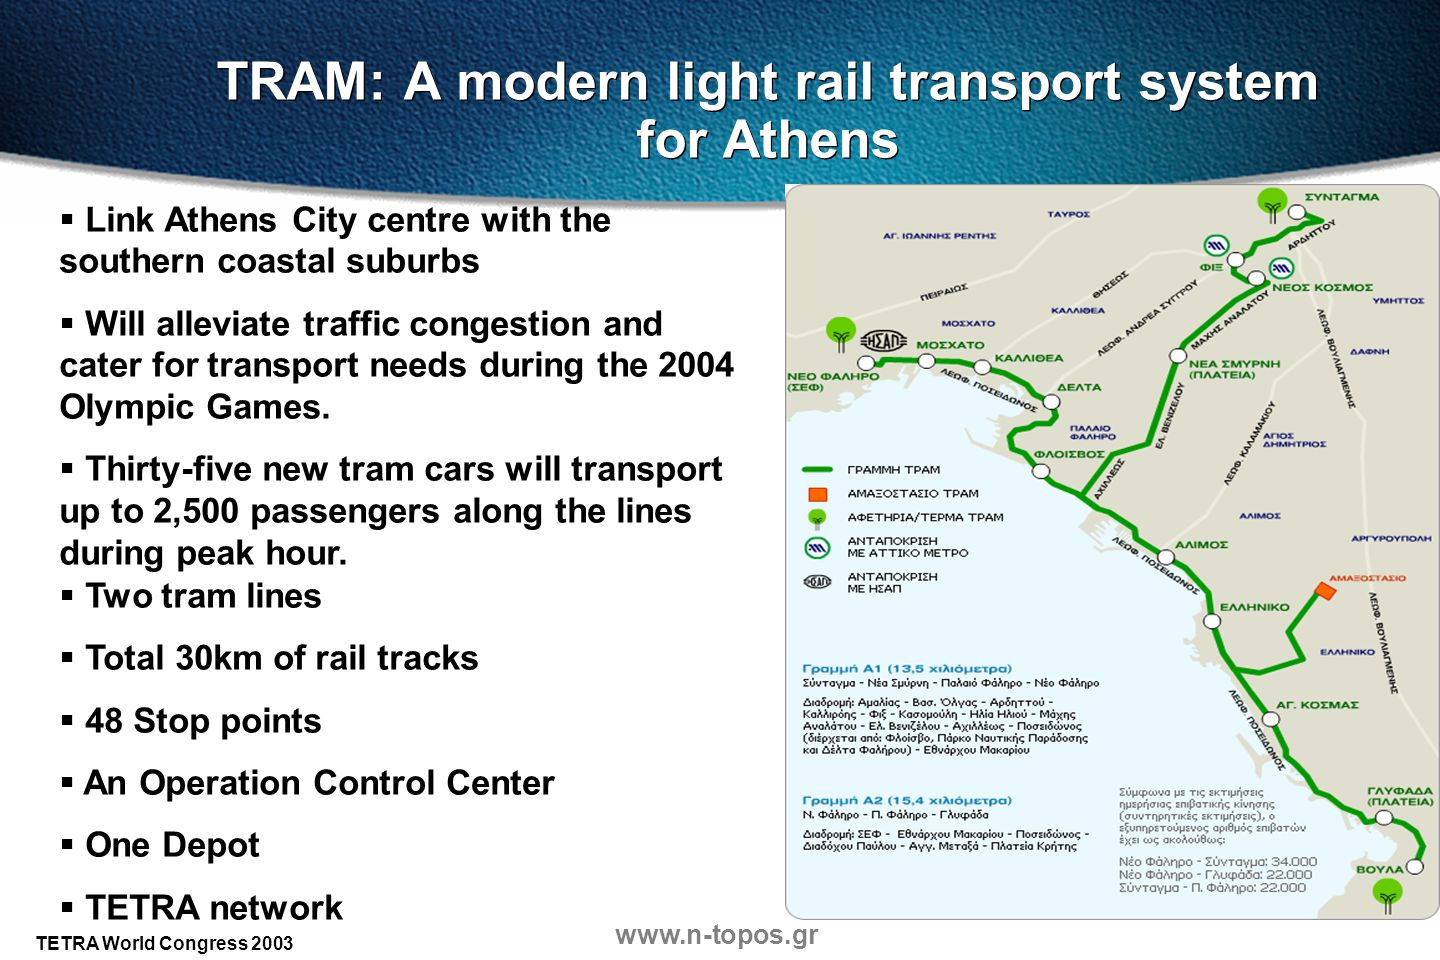 TRAM: A modern light rail transport system for Athens